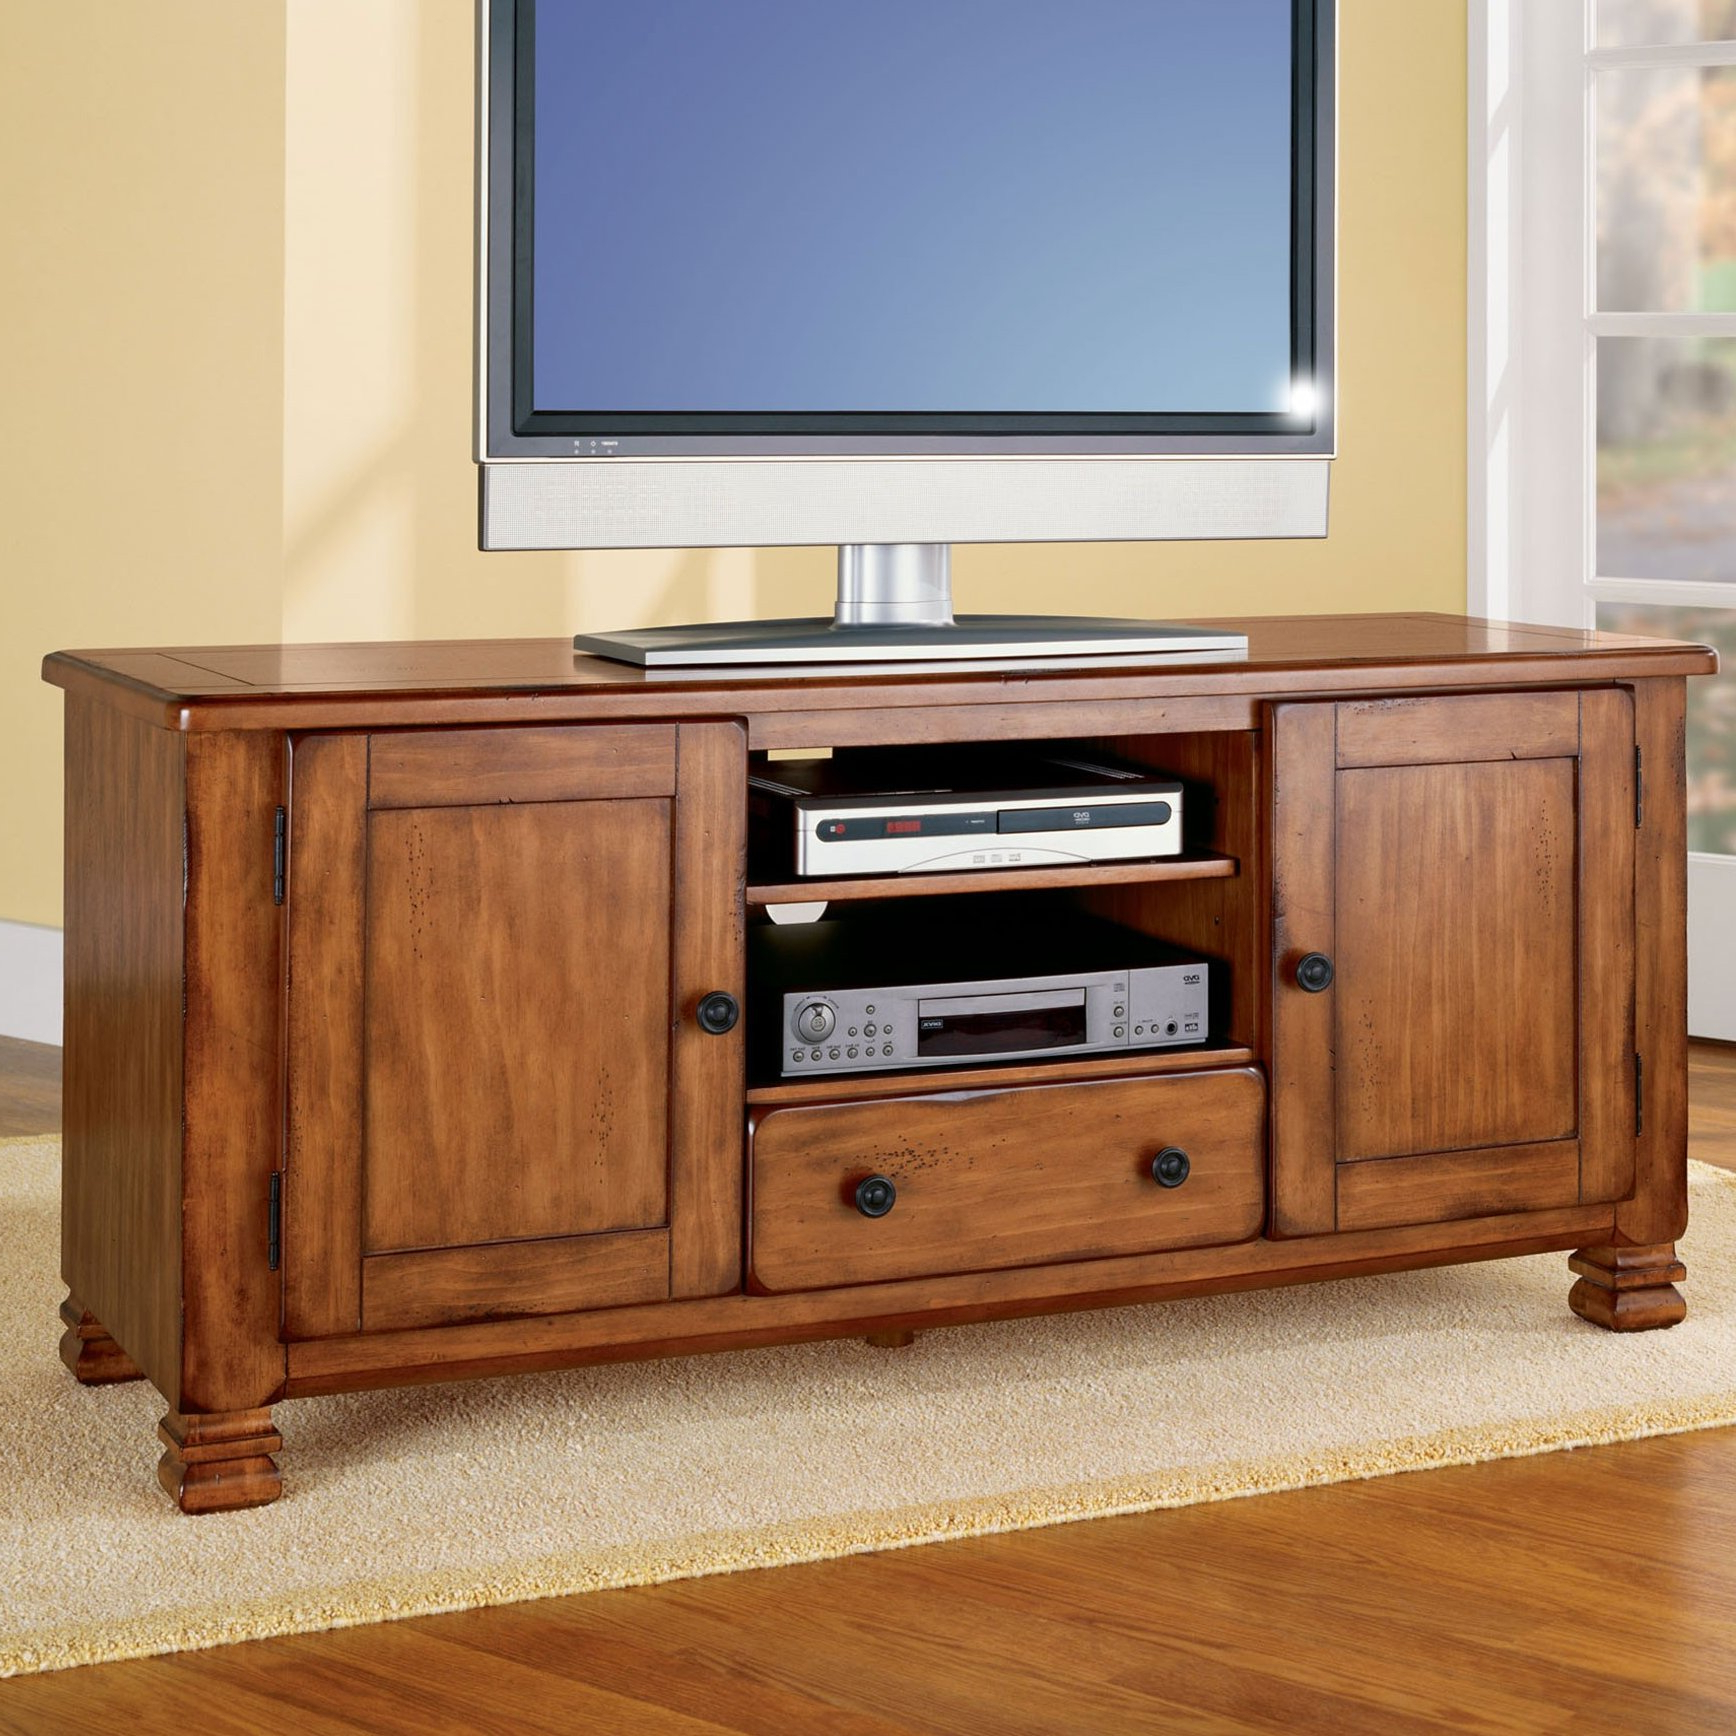 "Alcott Hill Brackenridge Tv Stand For Tvs Up To 55"" & Reviews 